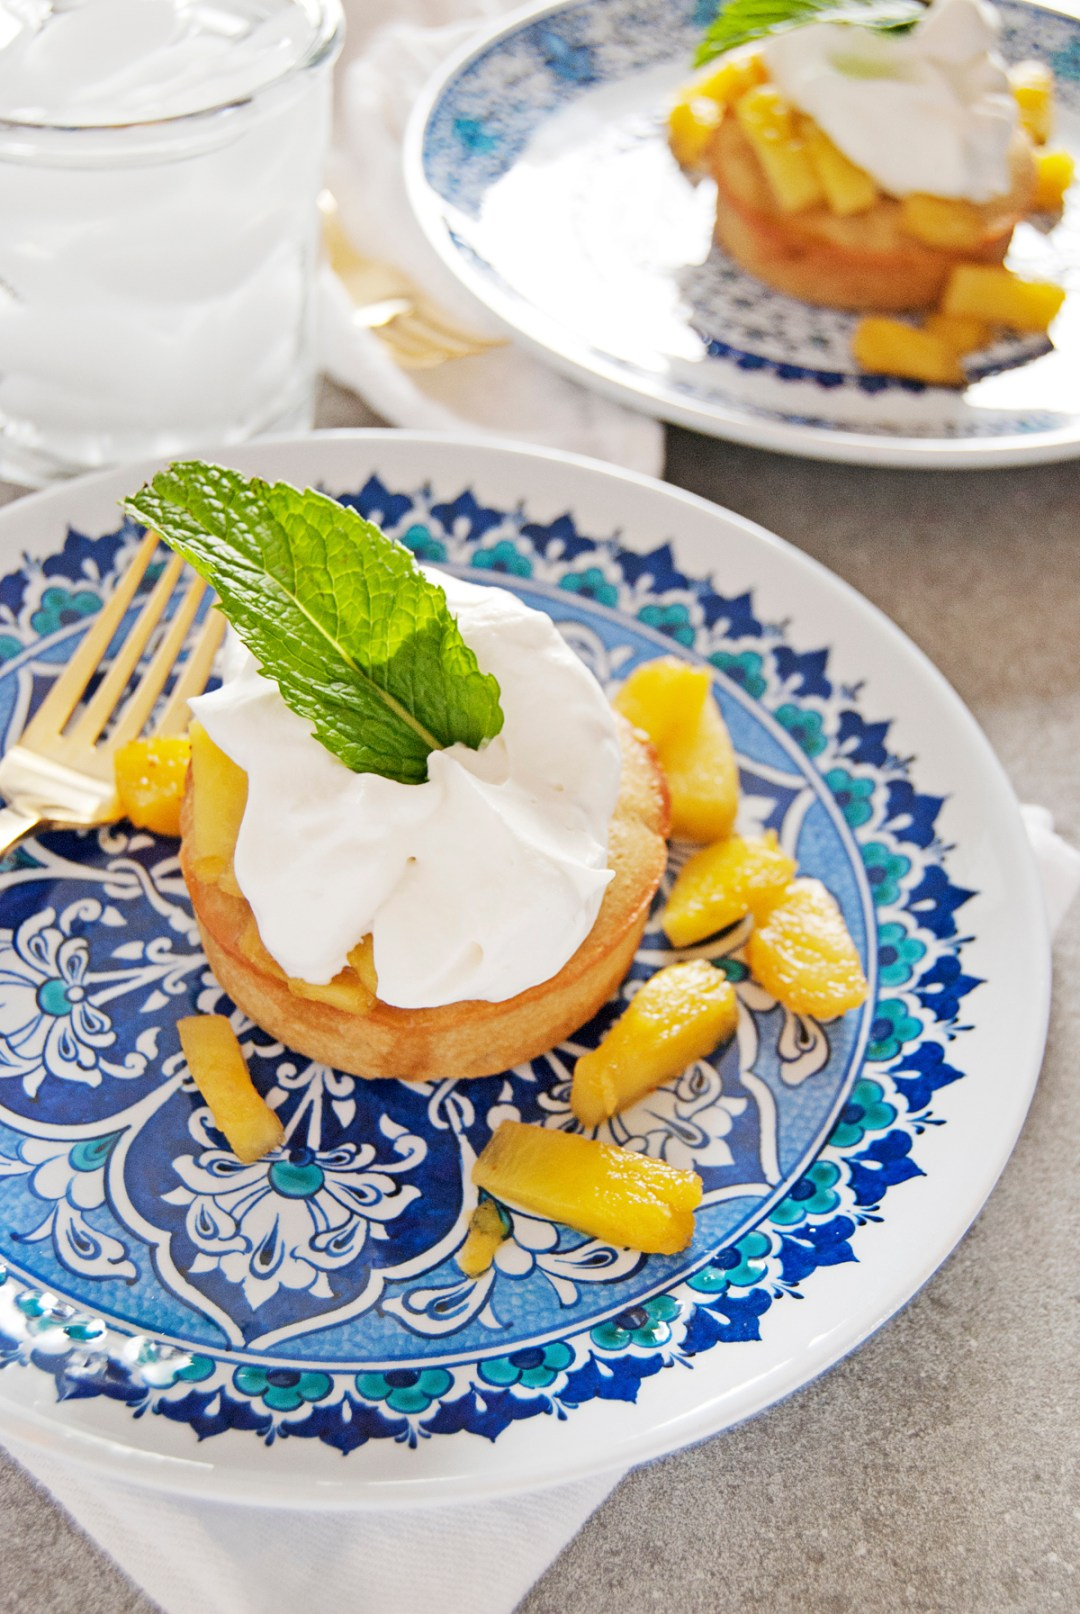 These mini pineapple pound cakes are just too cute! They feature homemade individual pound cakes, topped with pineapple rum sauce and whipped cream.